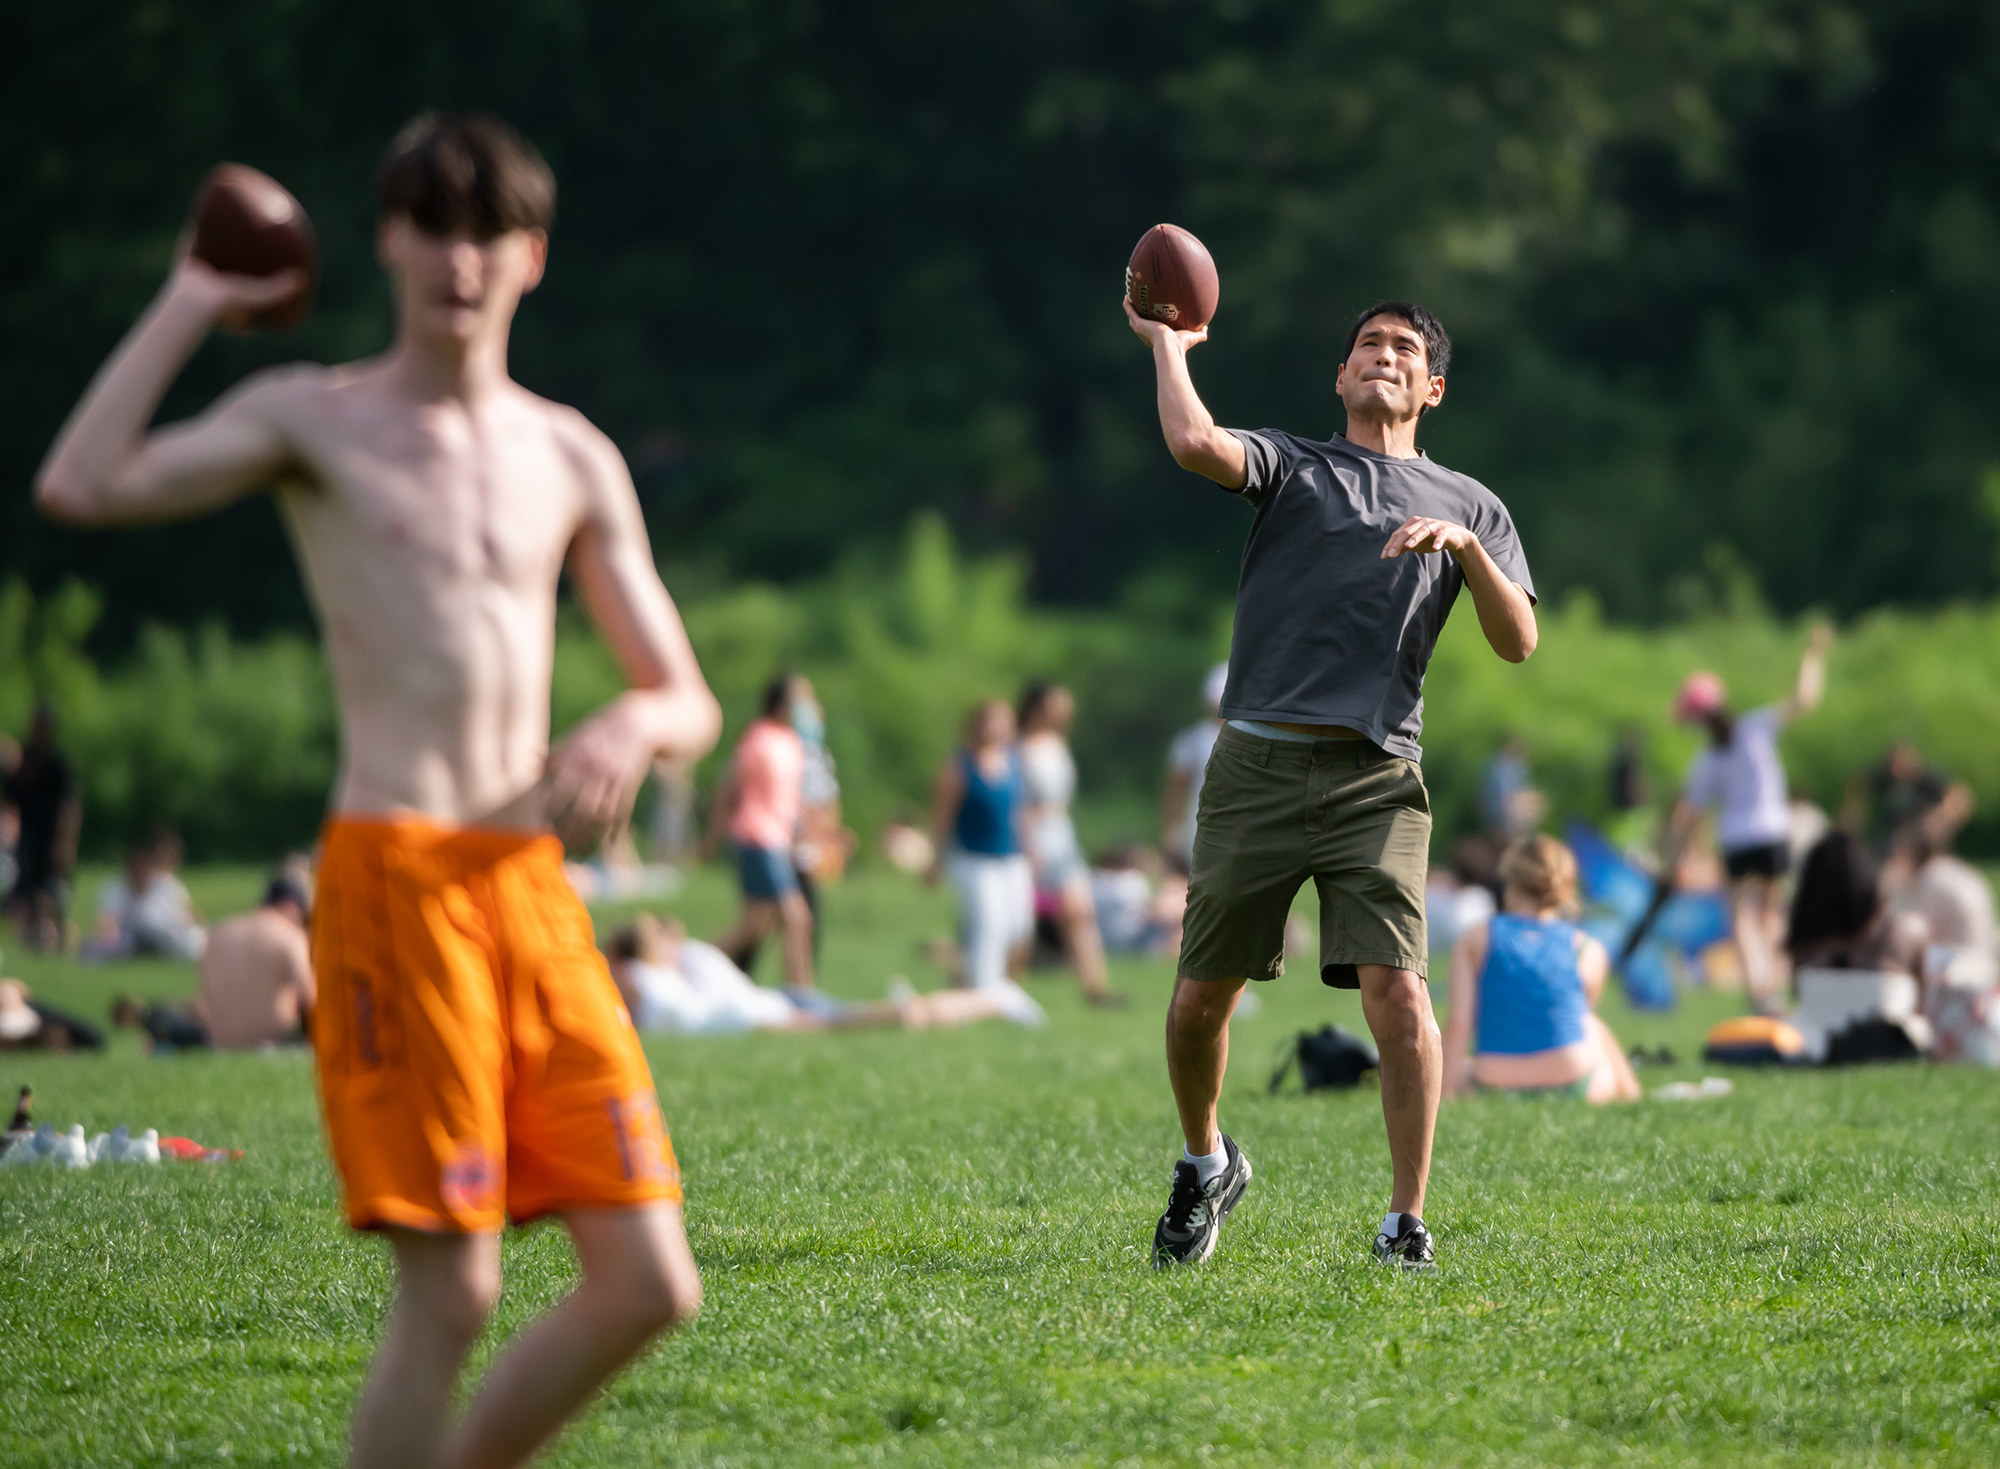 Two men in shorts throw footballs past the camera